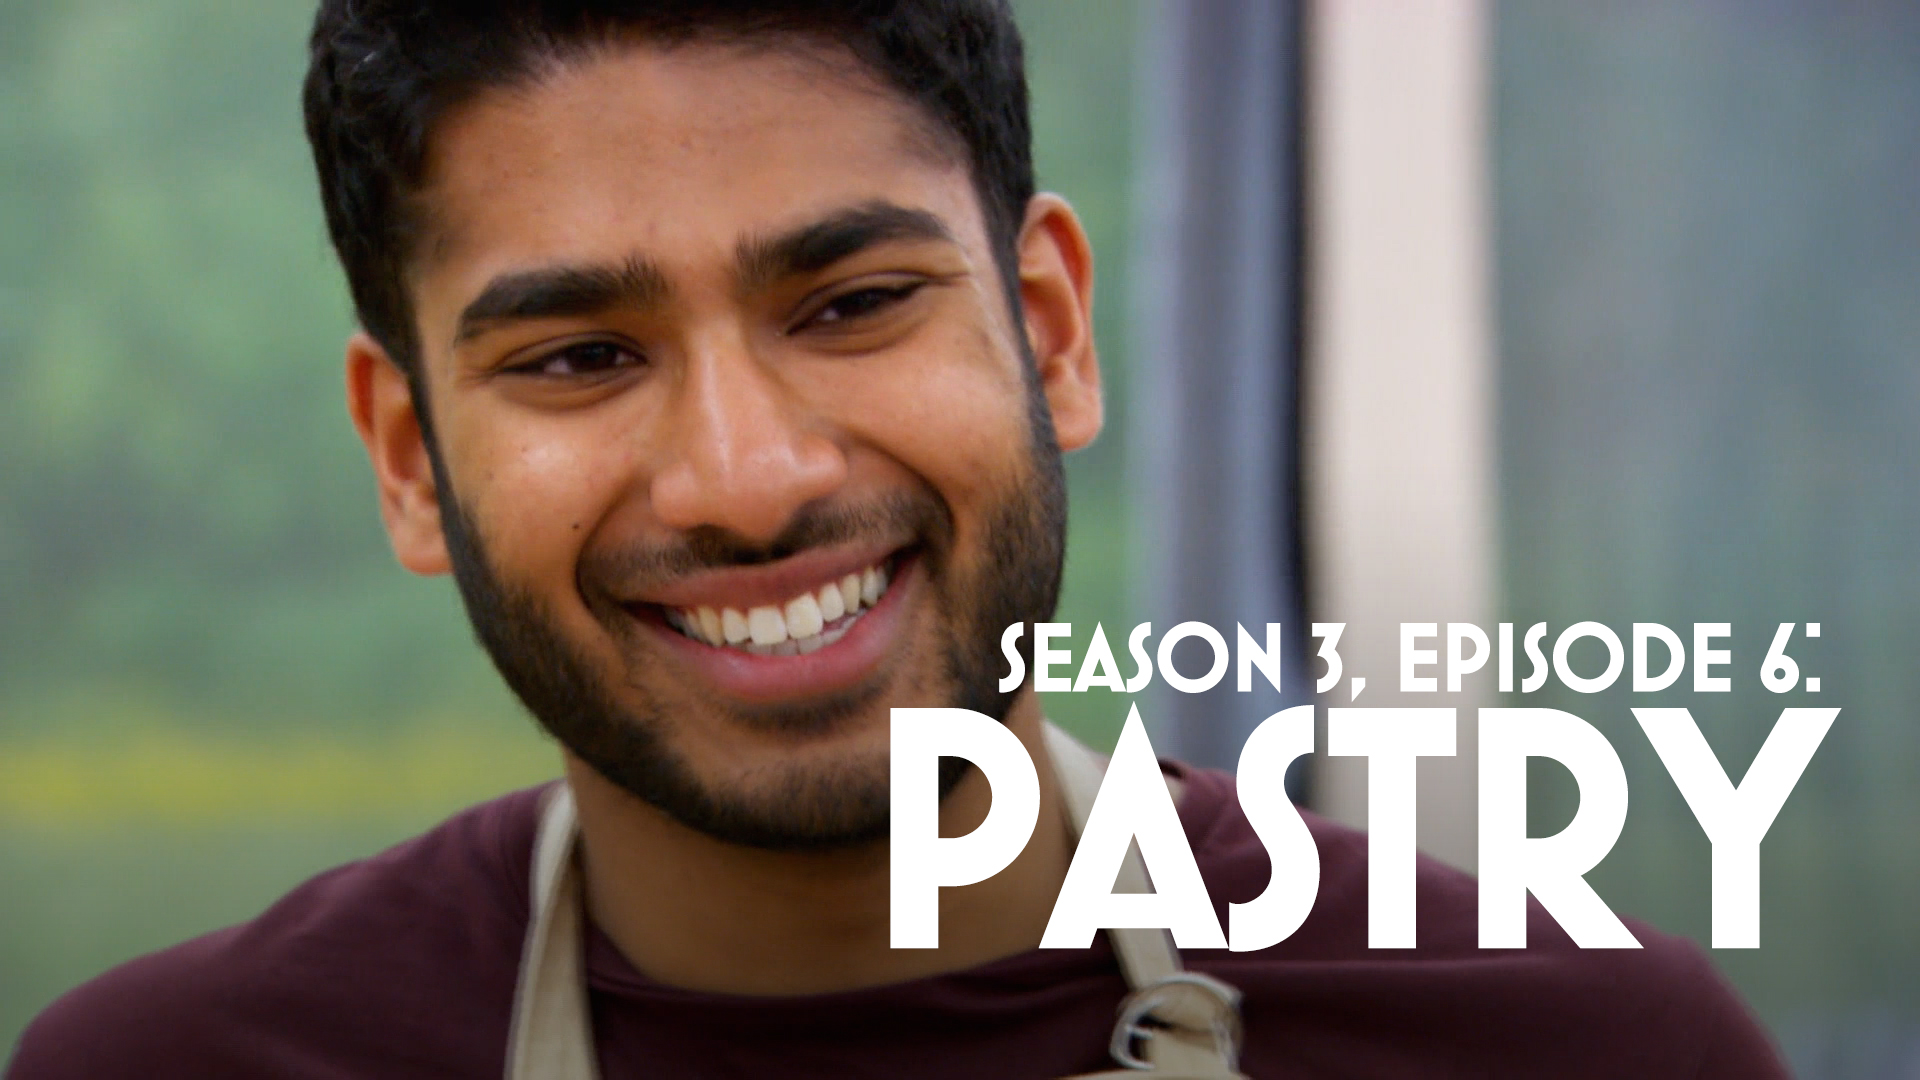 Episode 6: Pastry